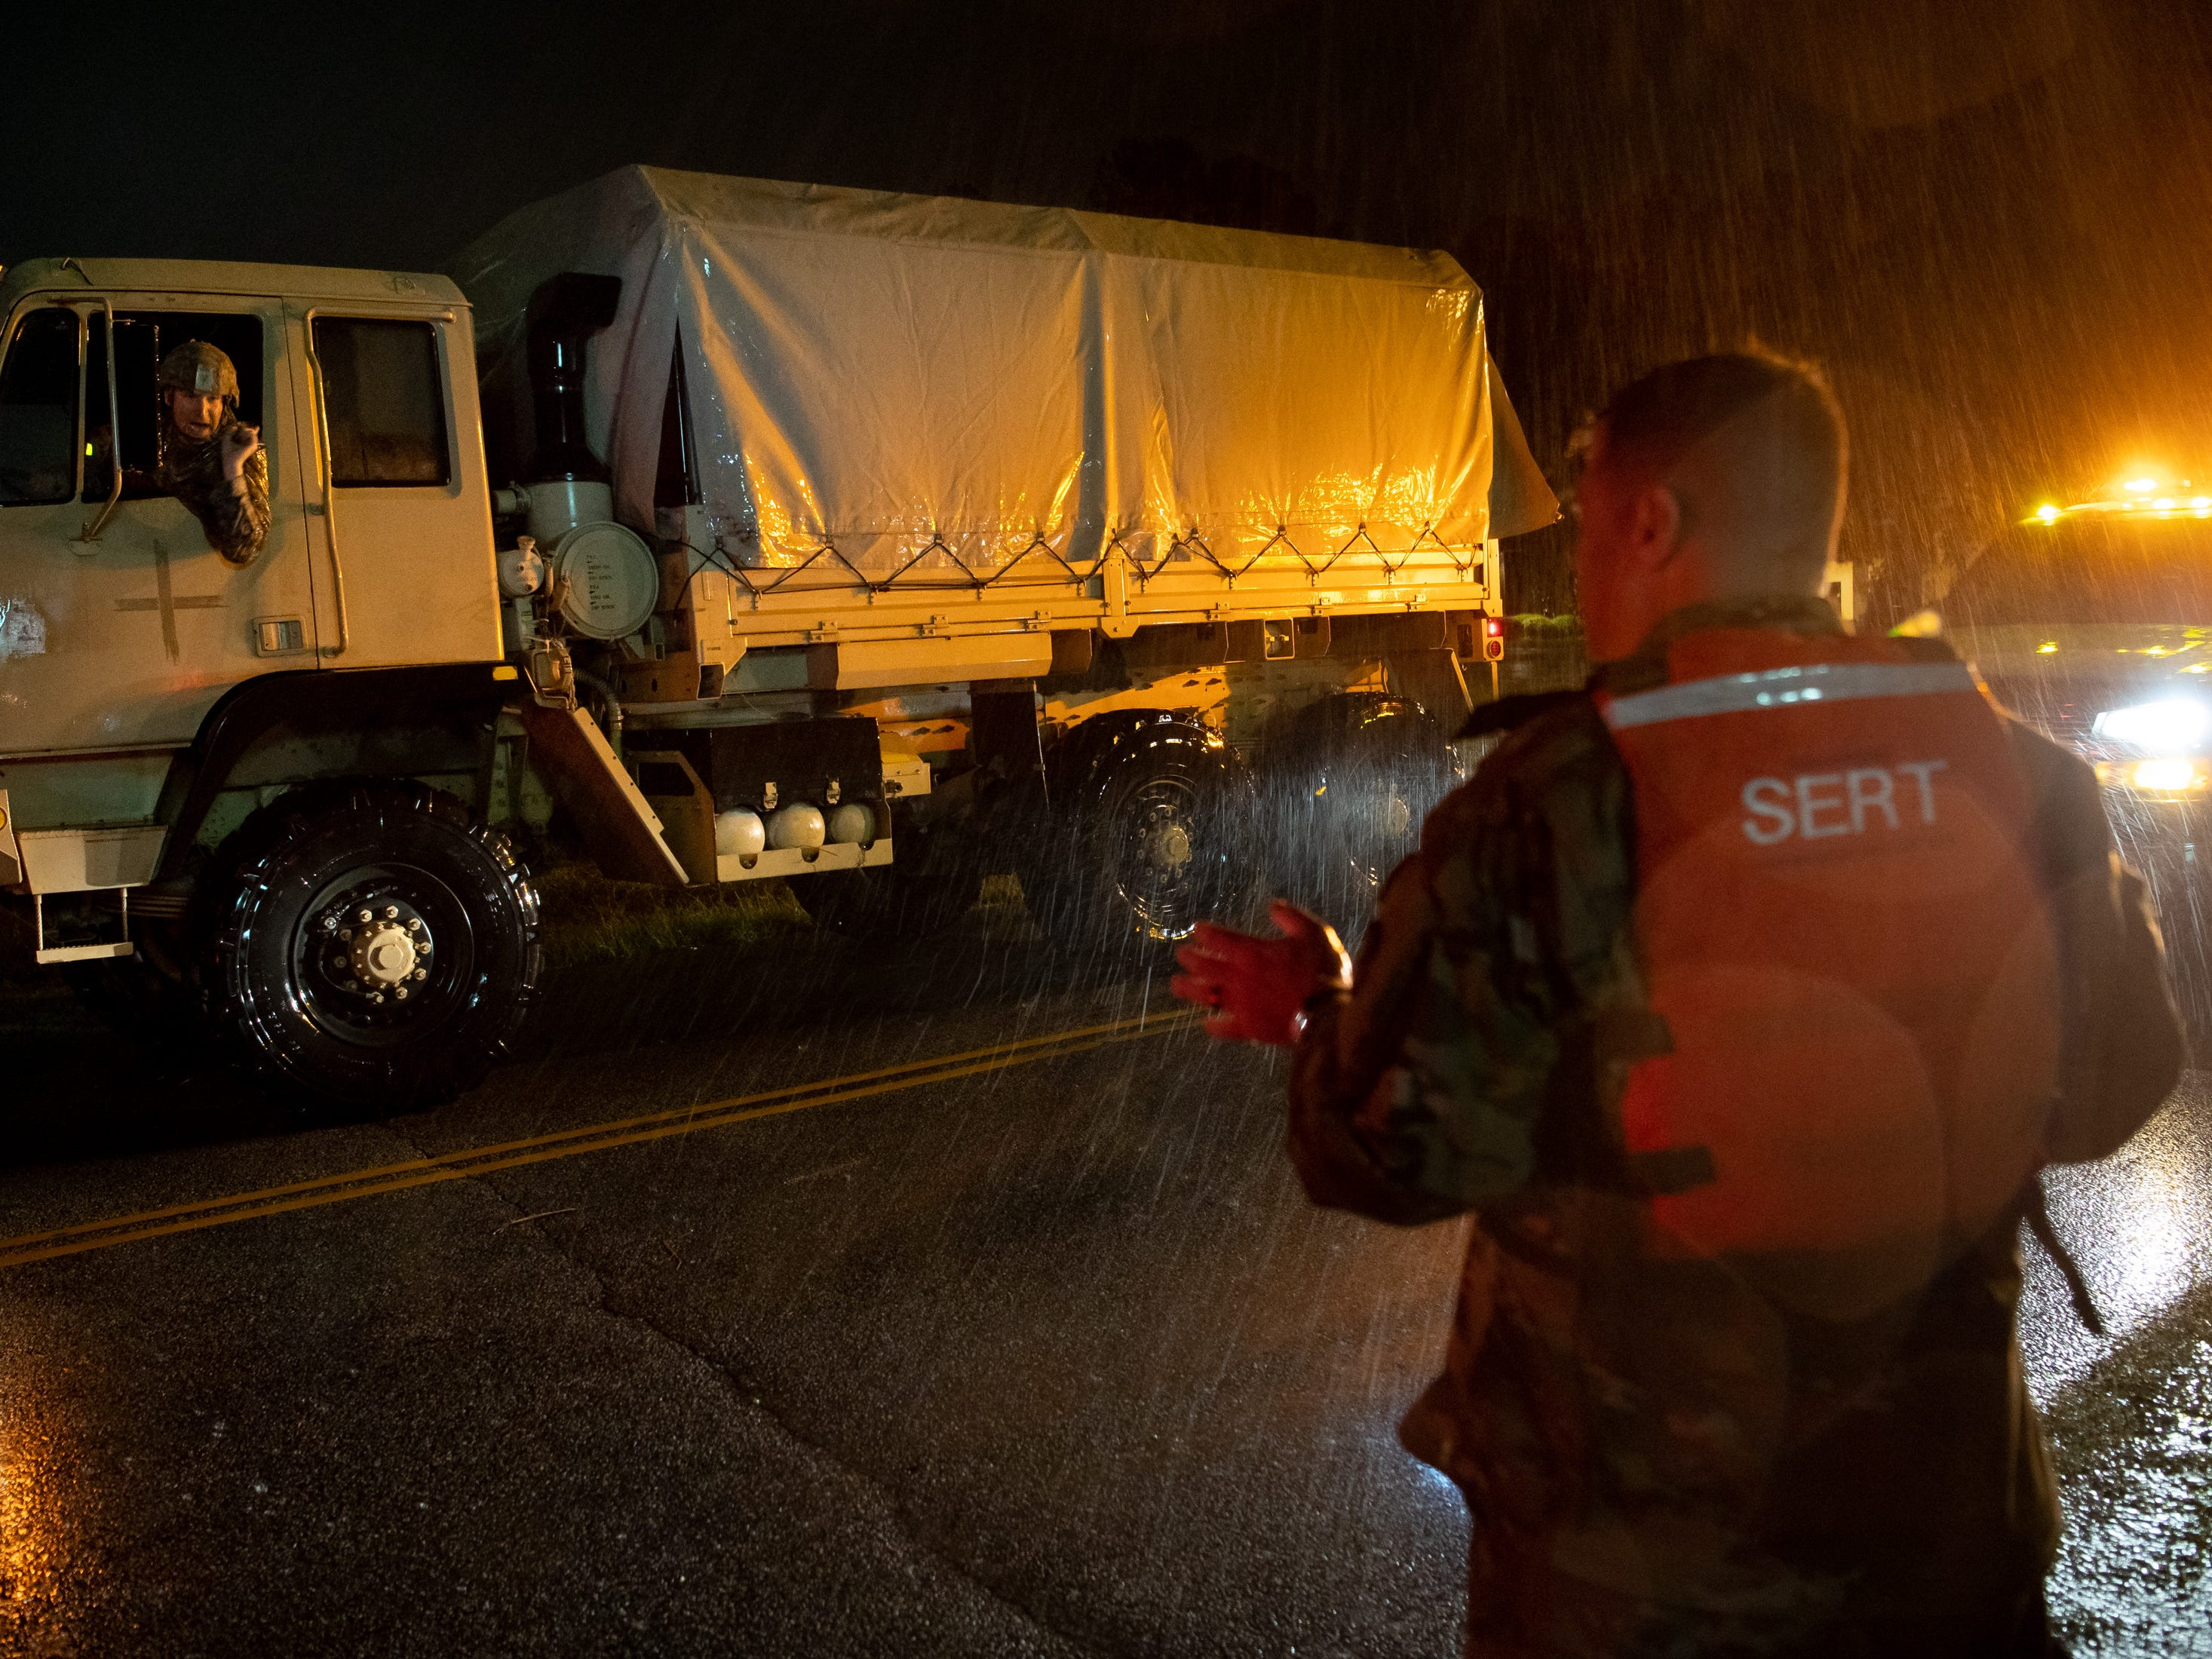 CSM Sid Baker, right, of the North Carolina National Guard, speaks with the driver of a National Guard truck carrying evacuees from a flooded neighborhood as rain from Tropical Storm Florence continues to fall on Lumberton, N.C., Saturday, Sept. 15, 2018.